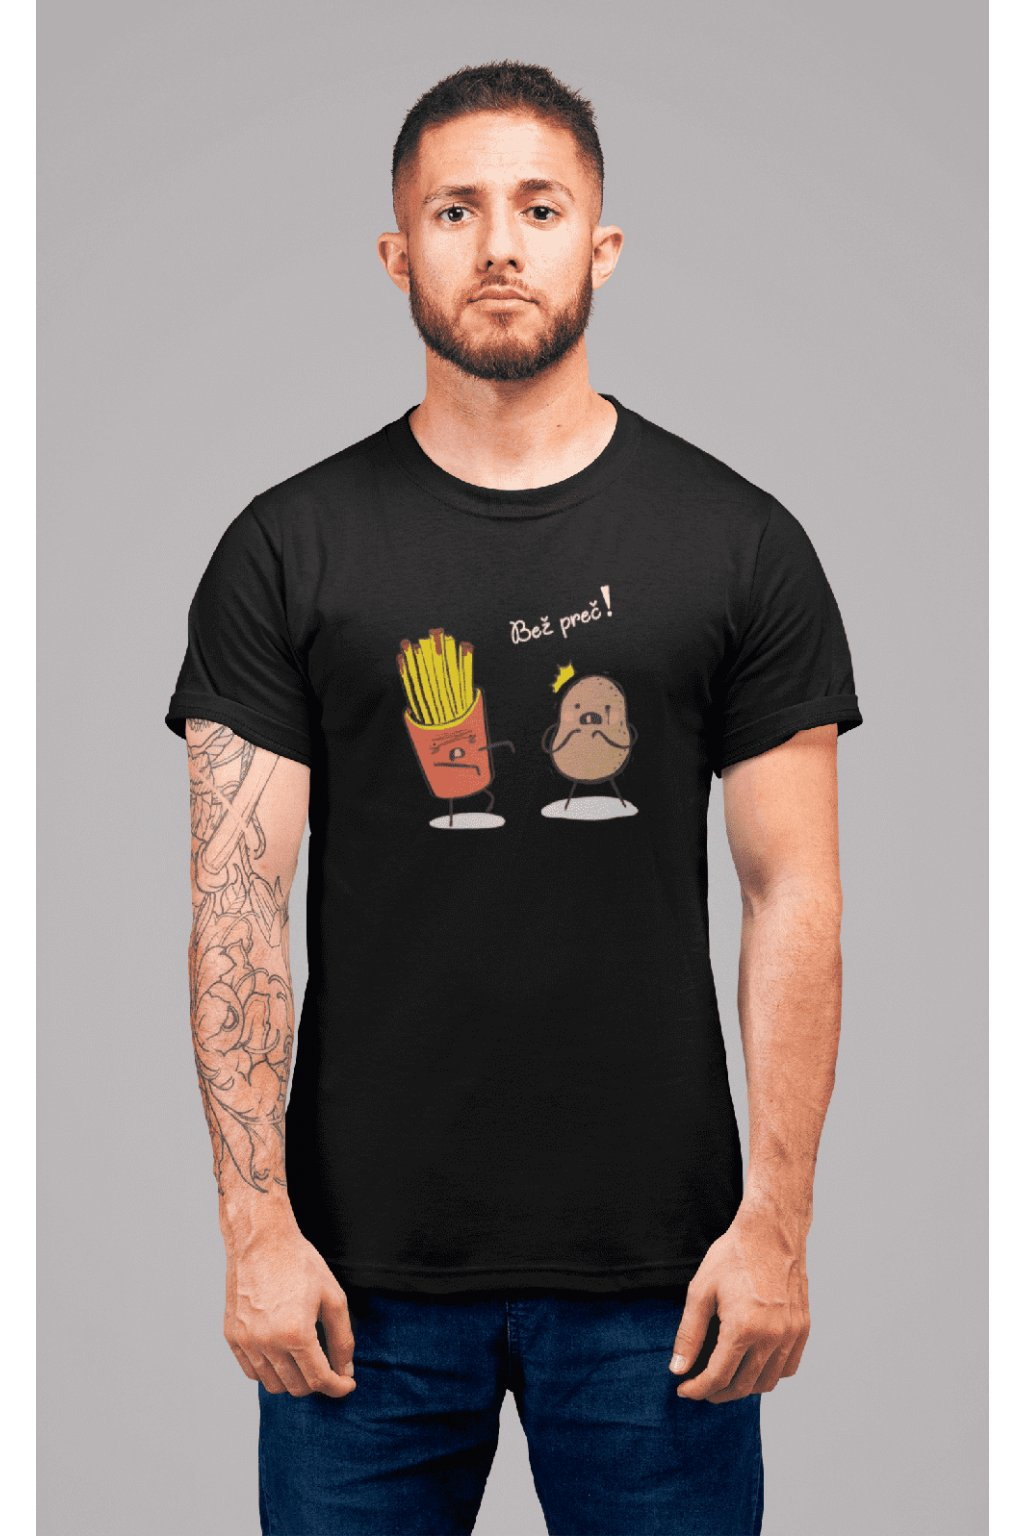 t shirt mockup of a redhead man with tattoos standing in a studio 22340 (25)